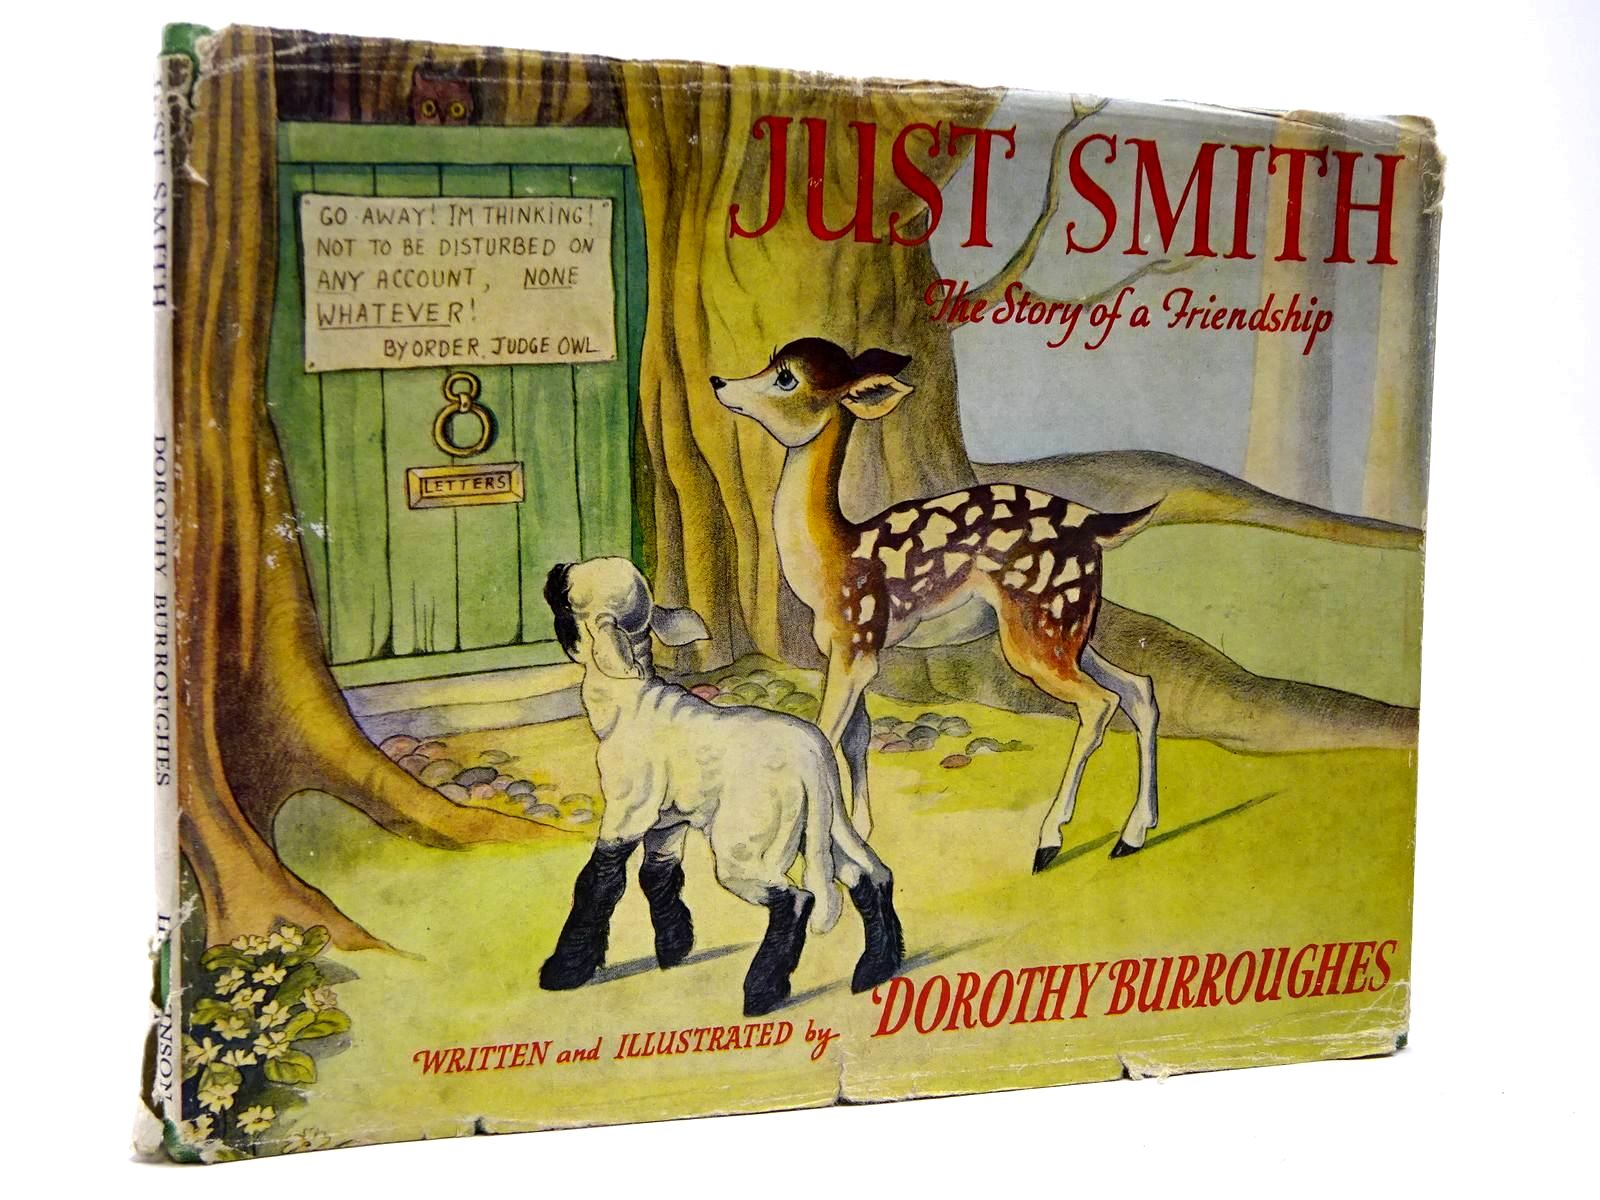 Photo of JUST SMITH written by Burroughes, Dorothy illustrated by Burroughes, Dorothy published by Hutchinson & Co. Ltd (STOCK CODE: 2130299)  for sale by Stella & Rose's Books